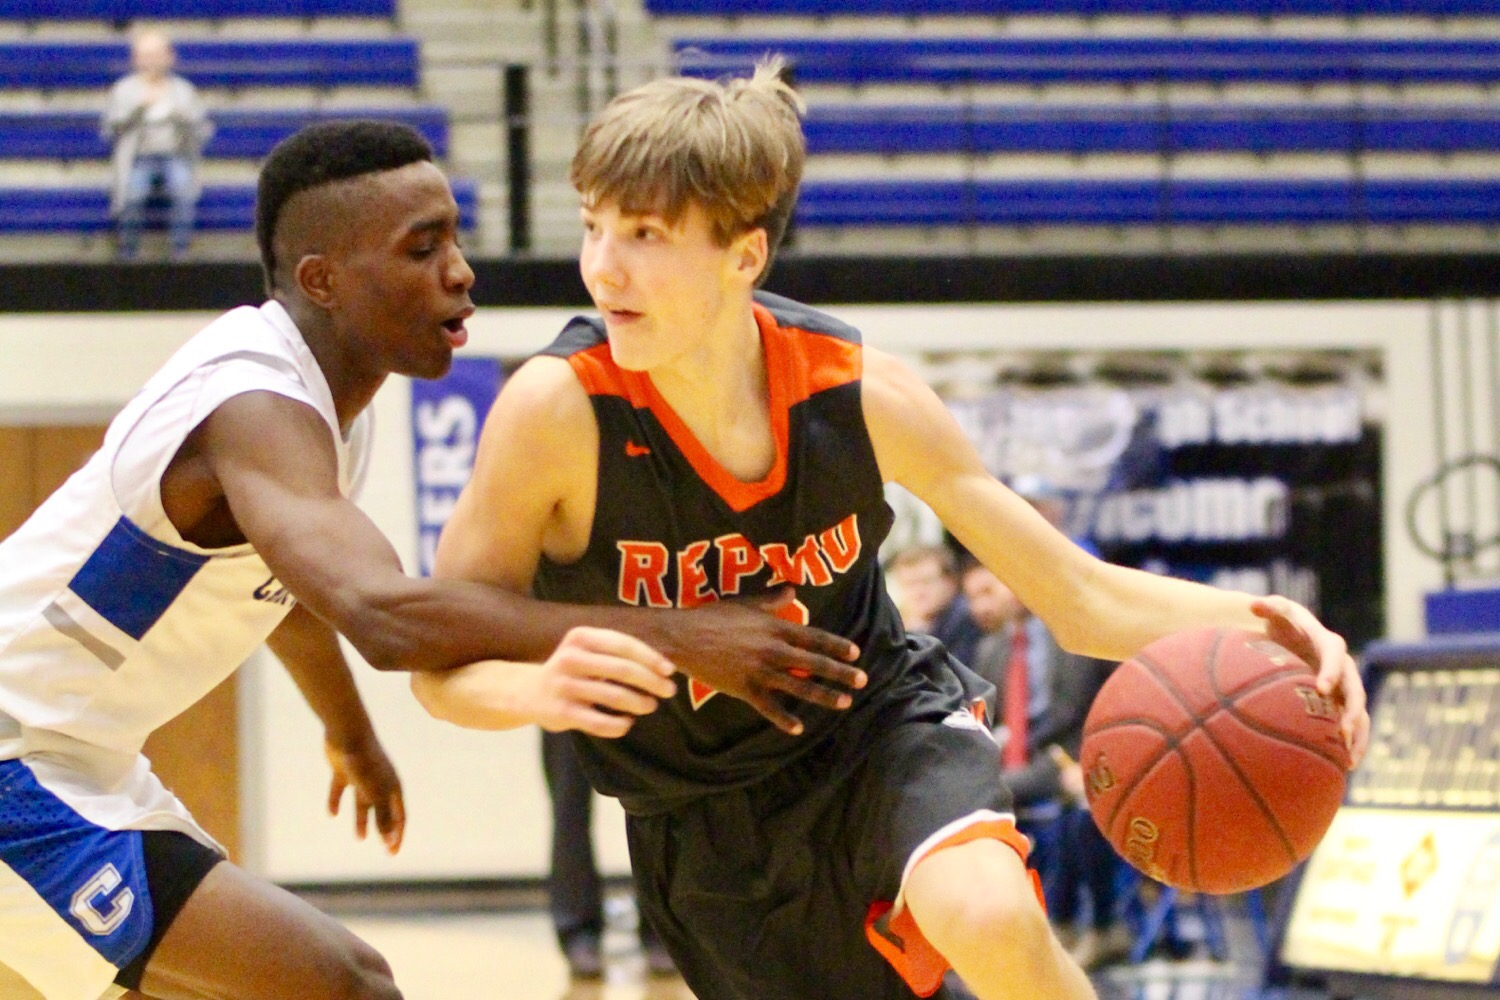 Republic Fights Off Challenge From Upstart Carthage